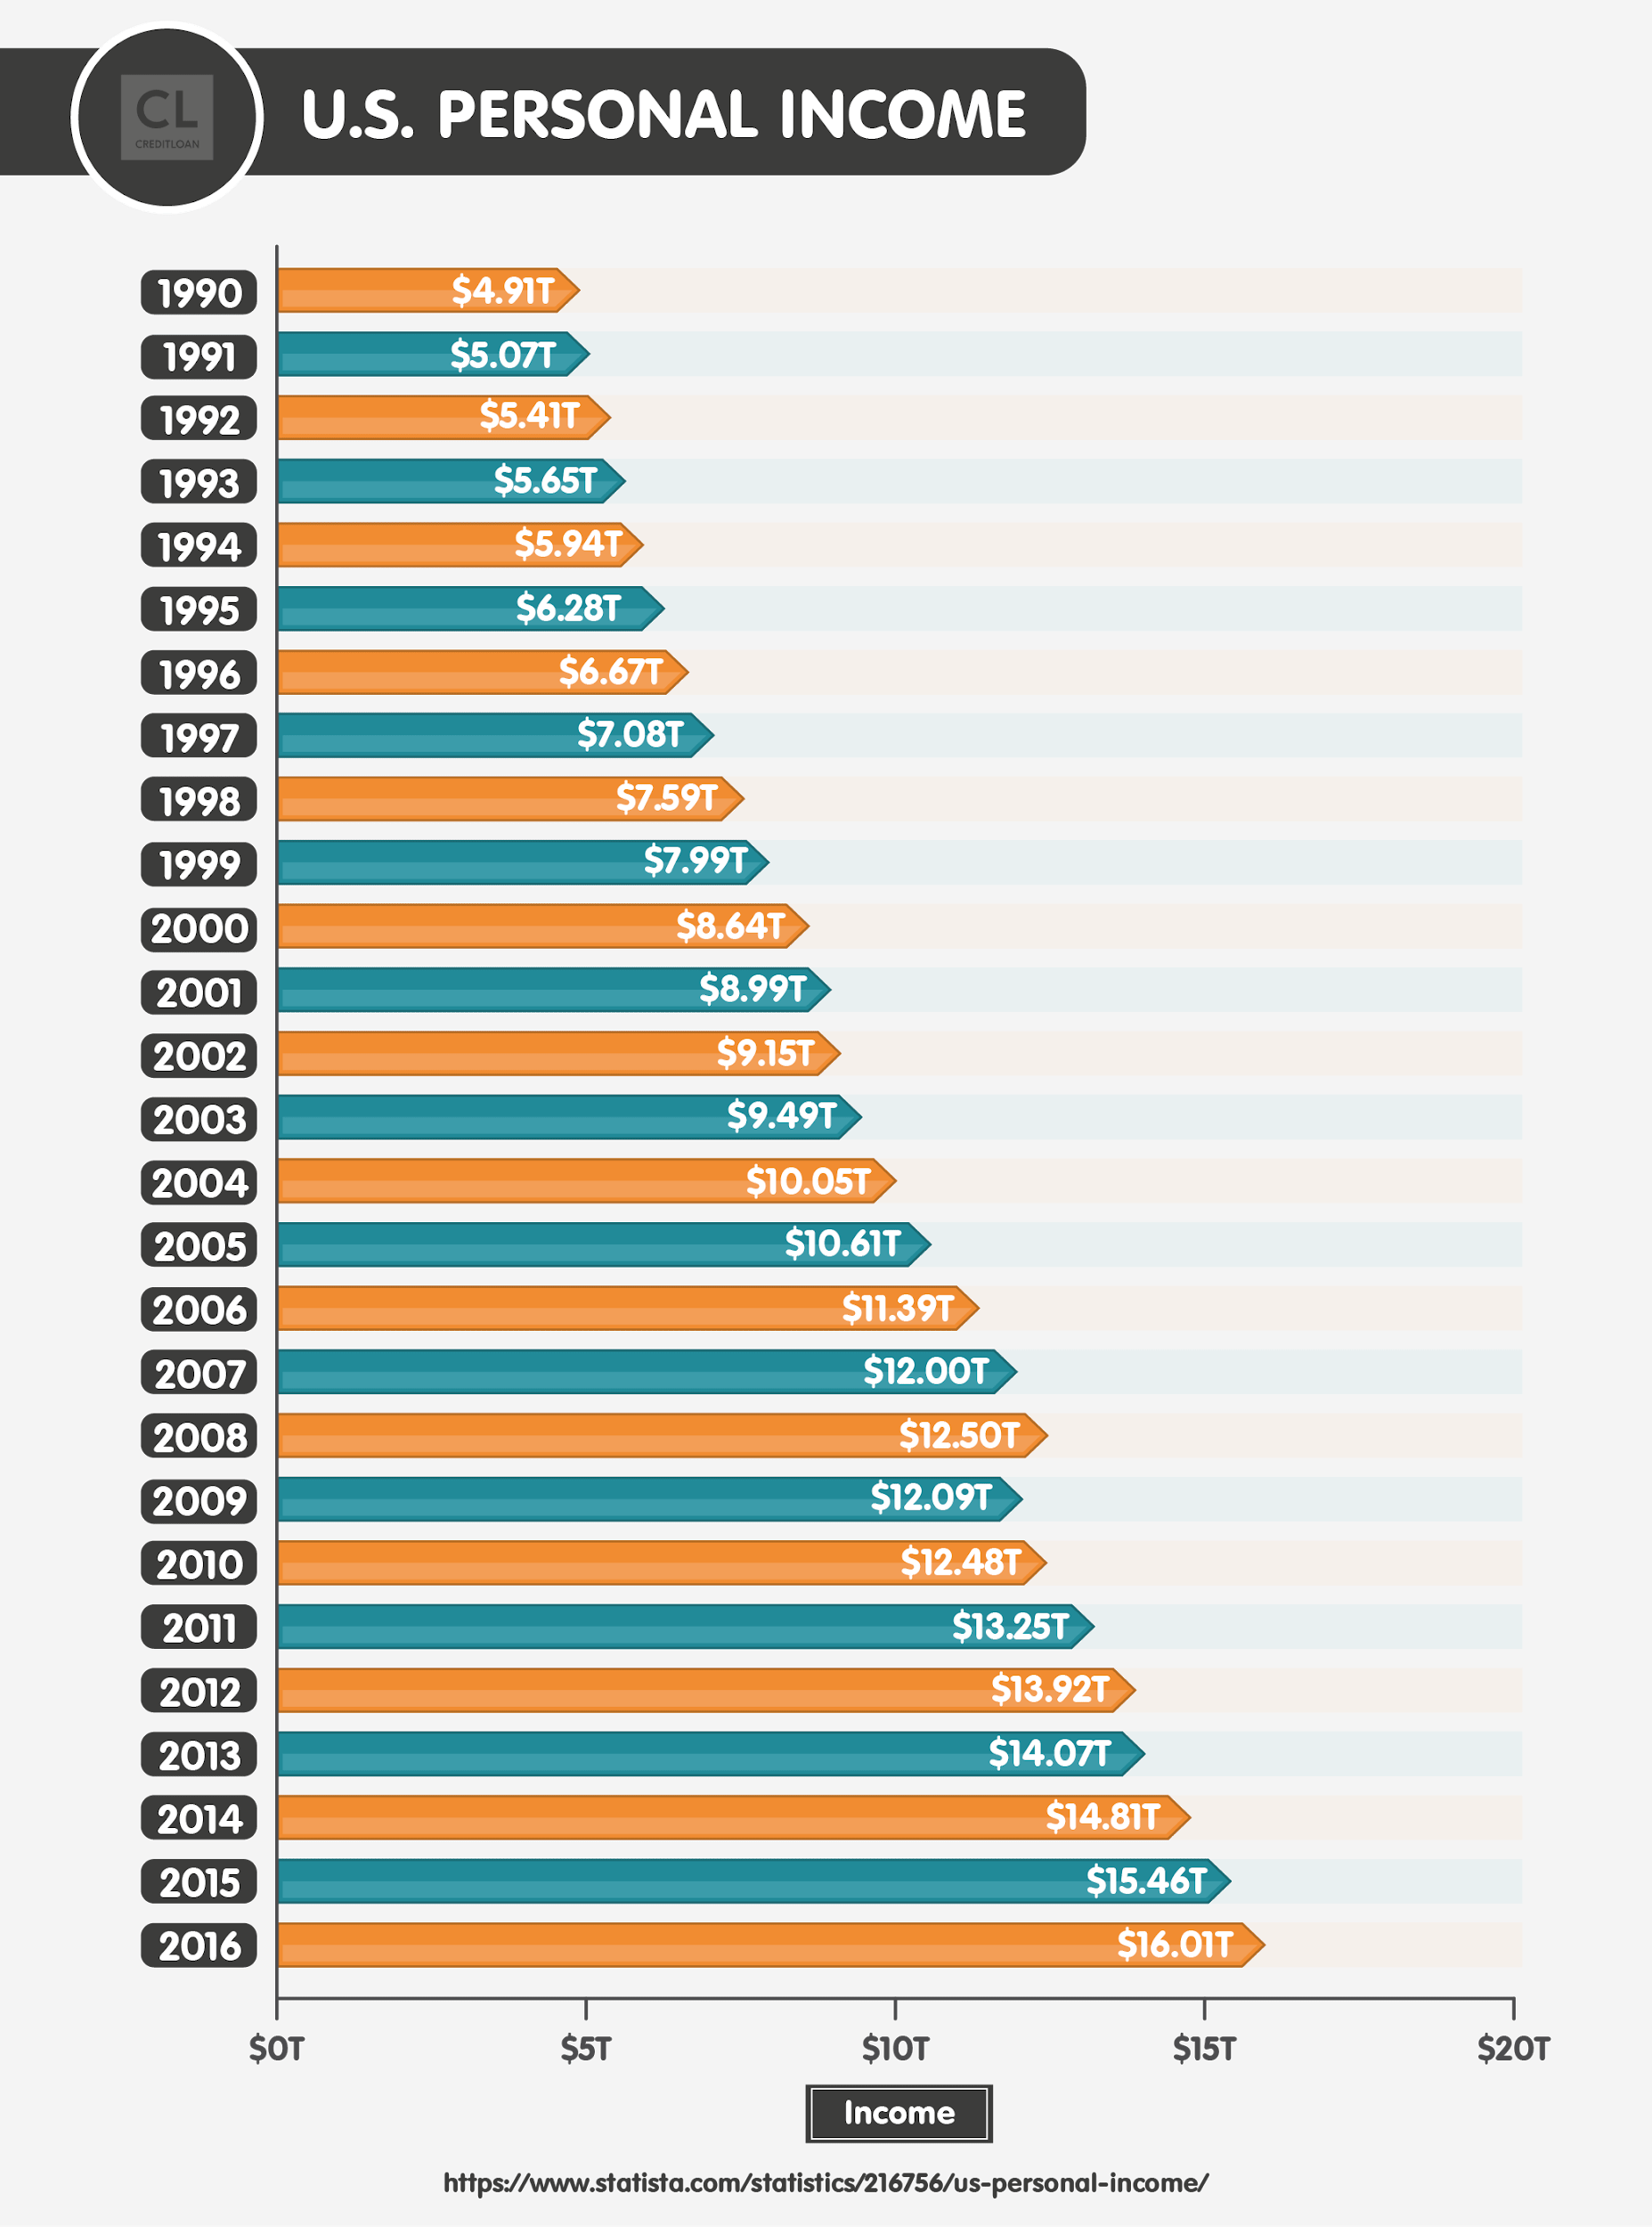 U.S. Personal Income from 1990-2016